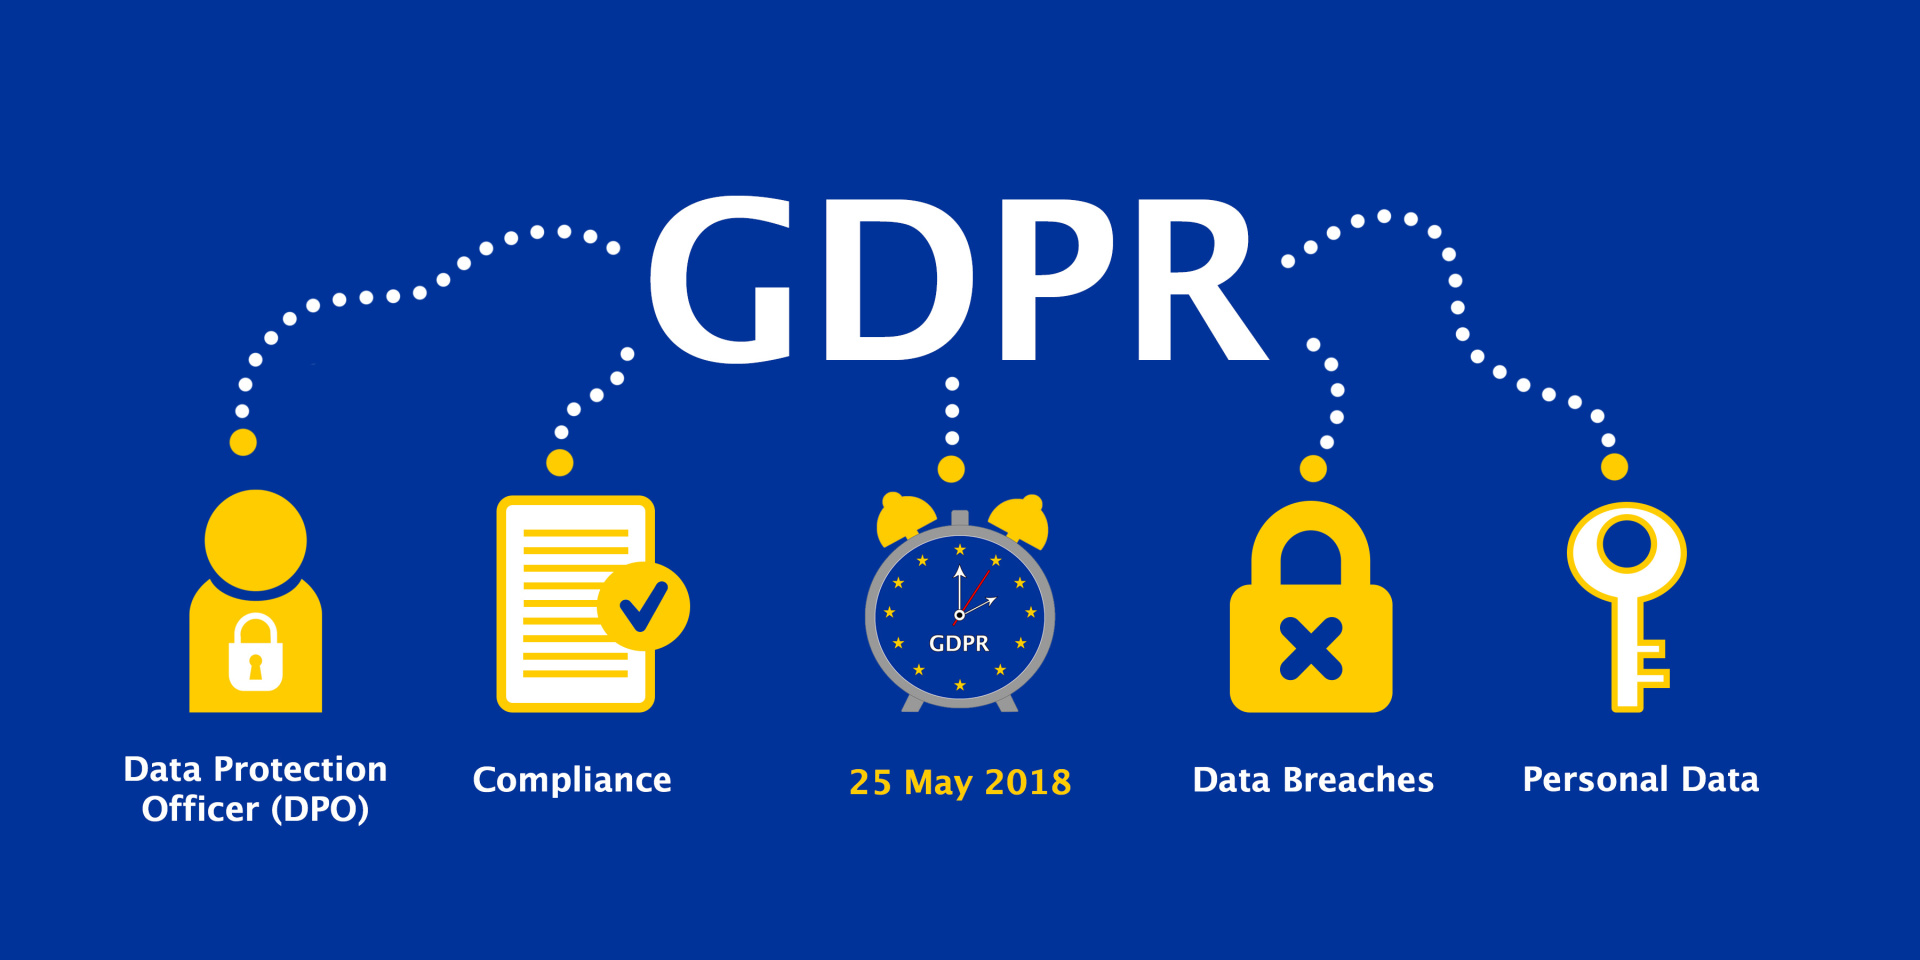 The impact of GDPR regulations on Life Science marketing